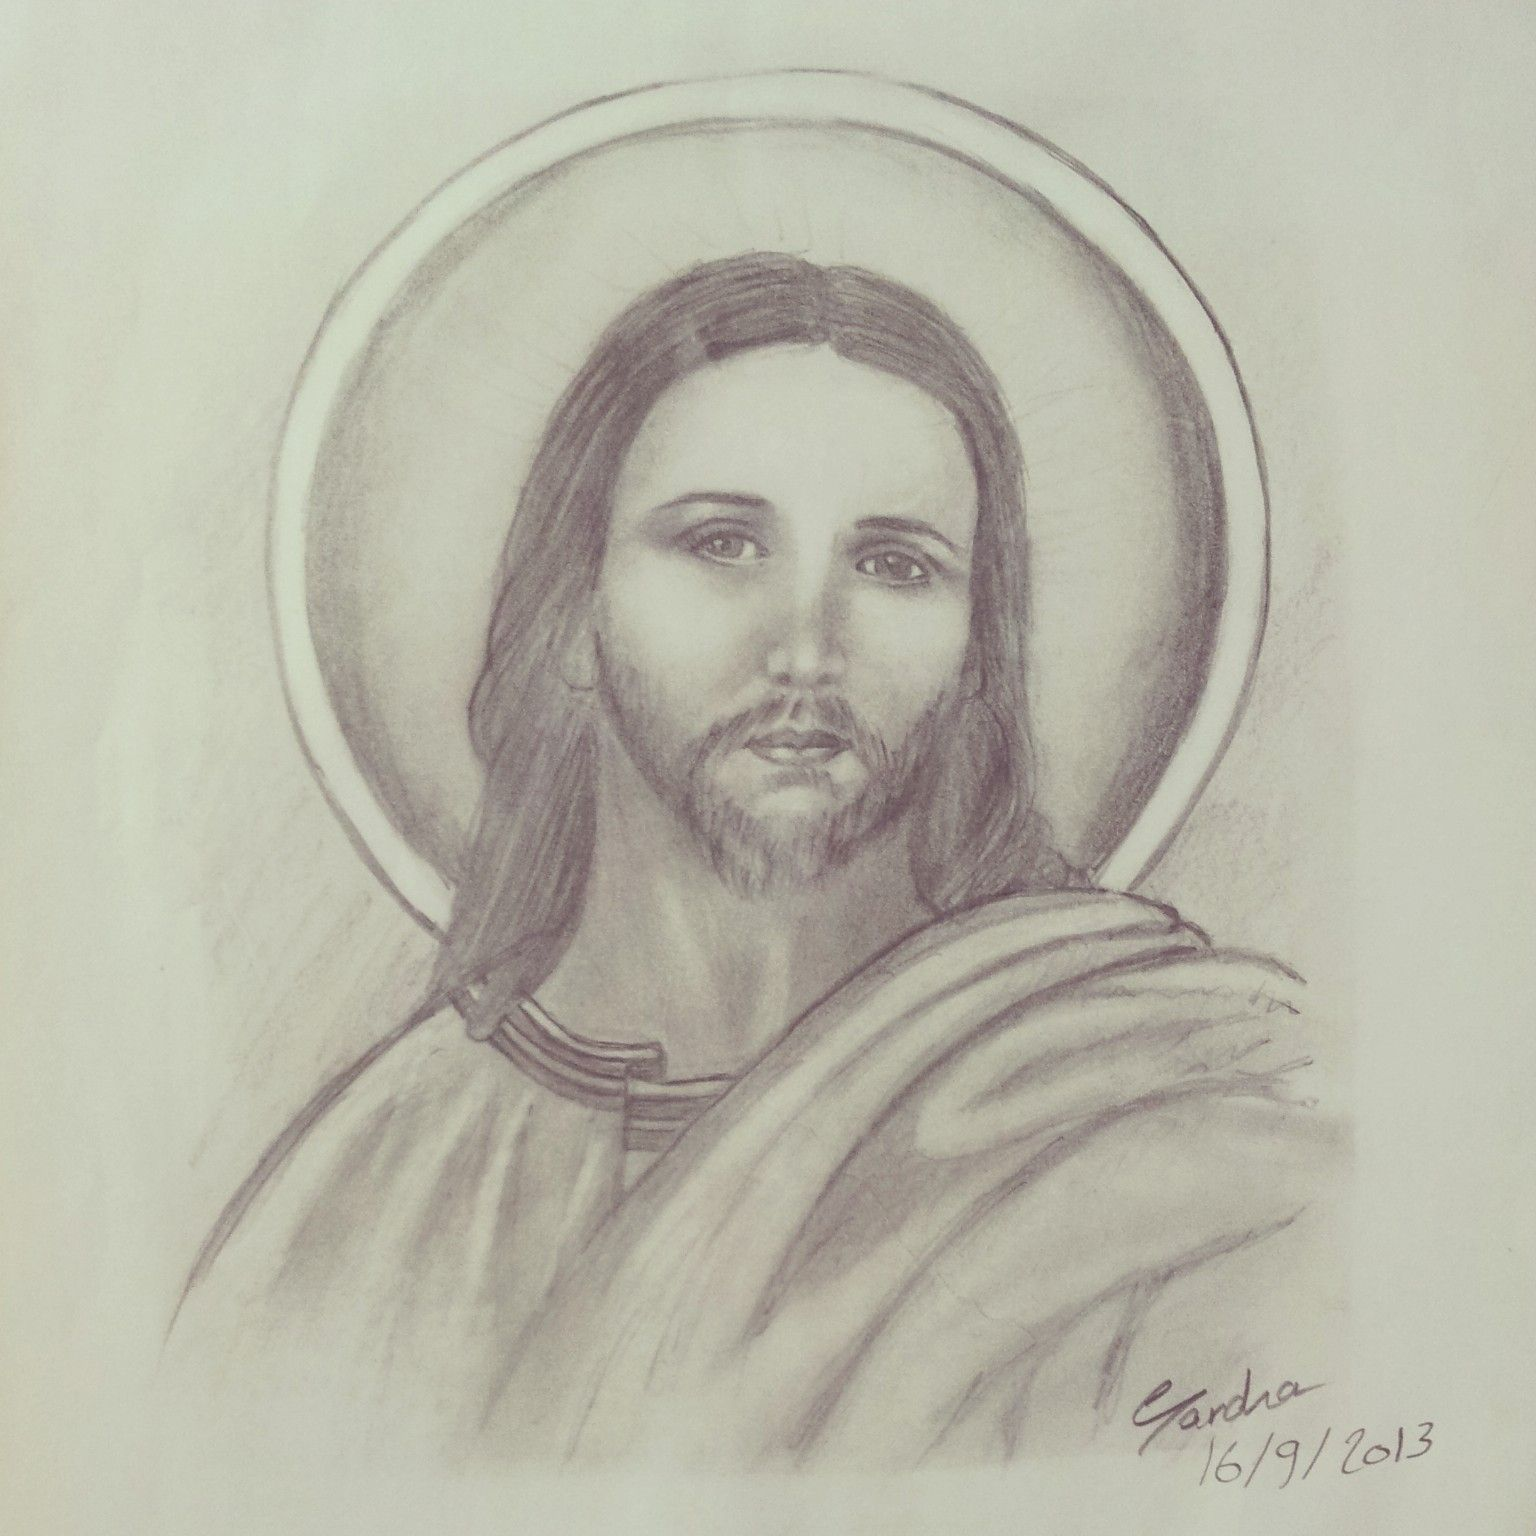 Jesus christ pencil sketch art with pencils sketches drawings